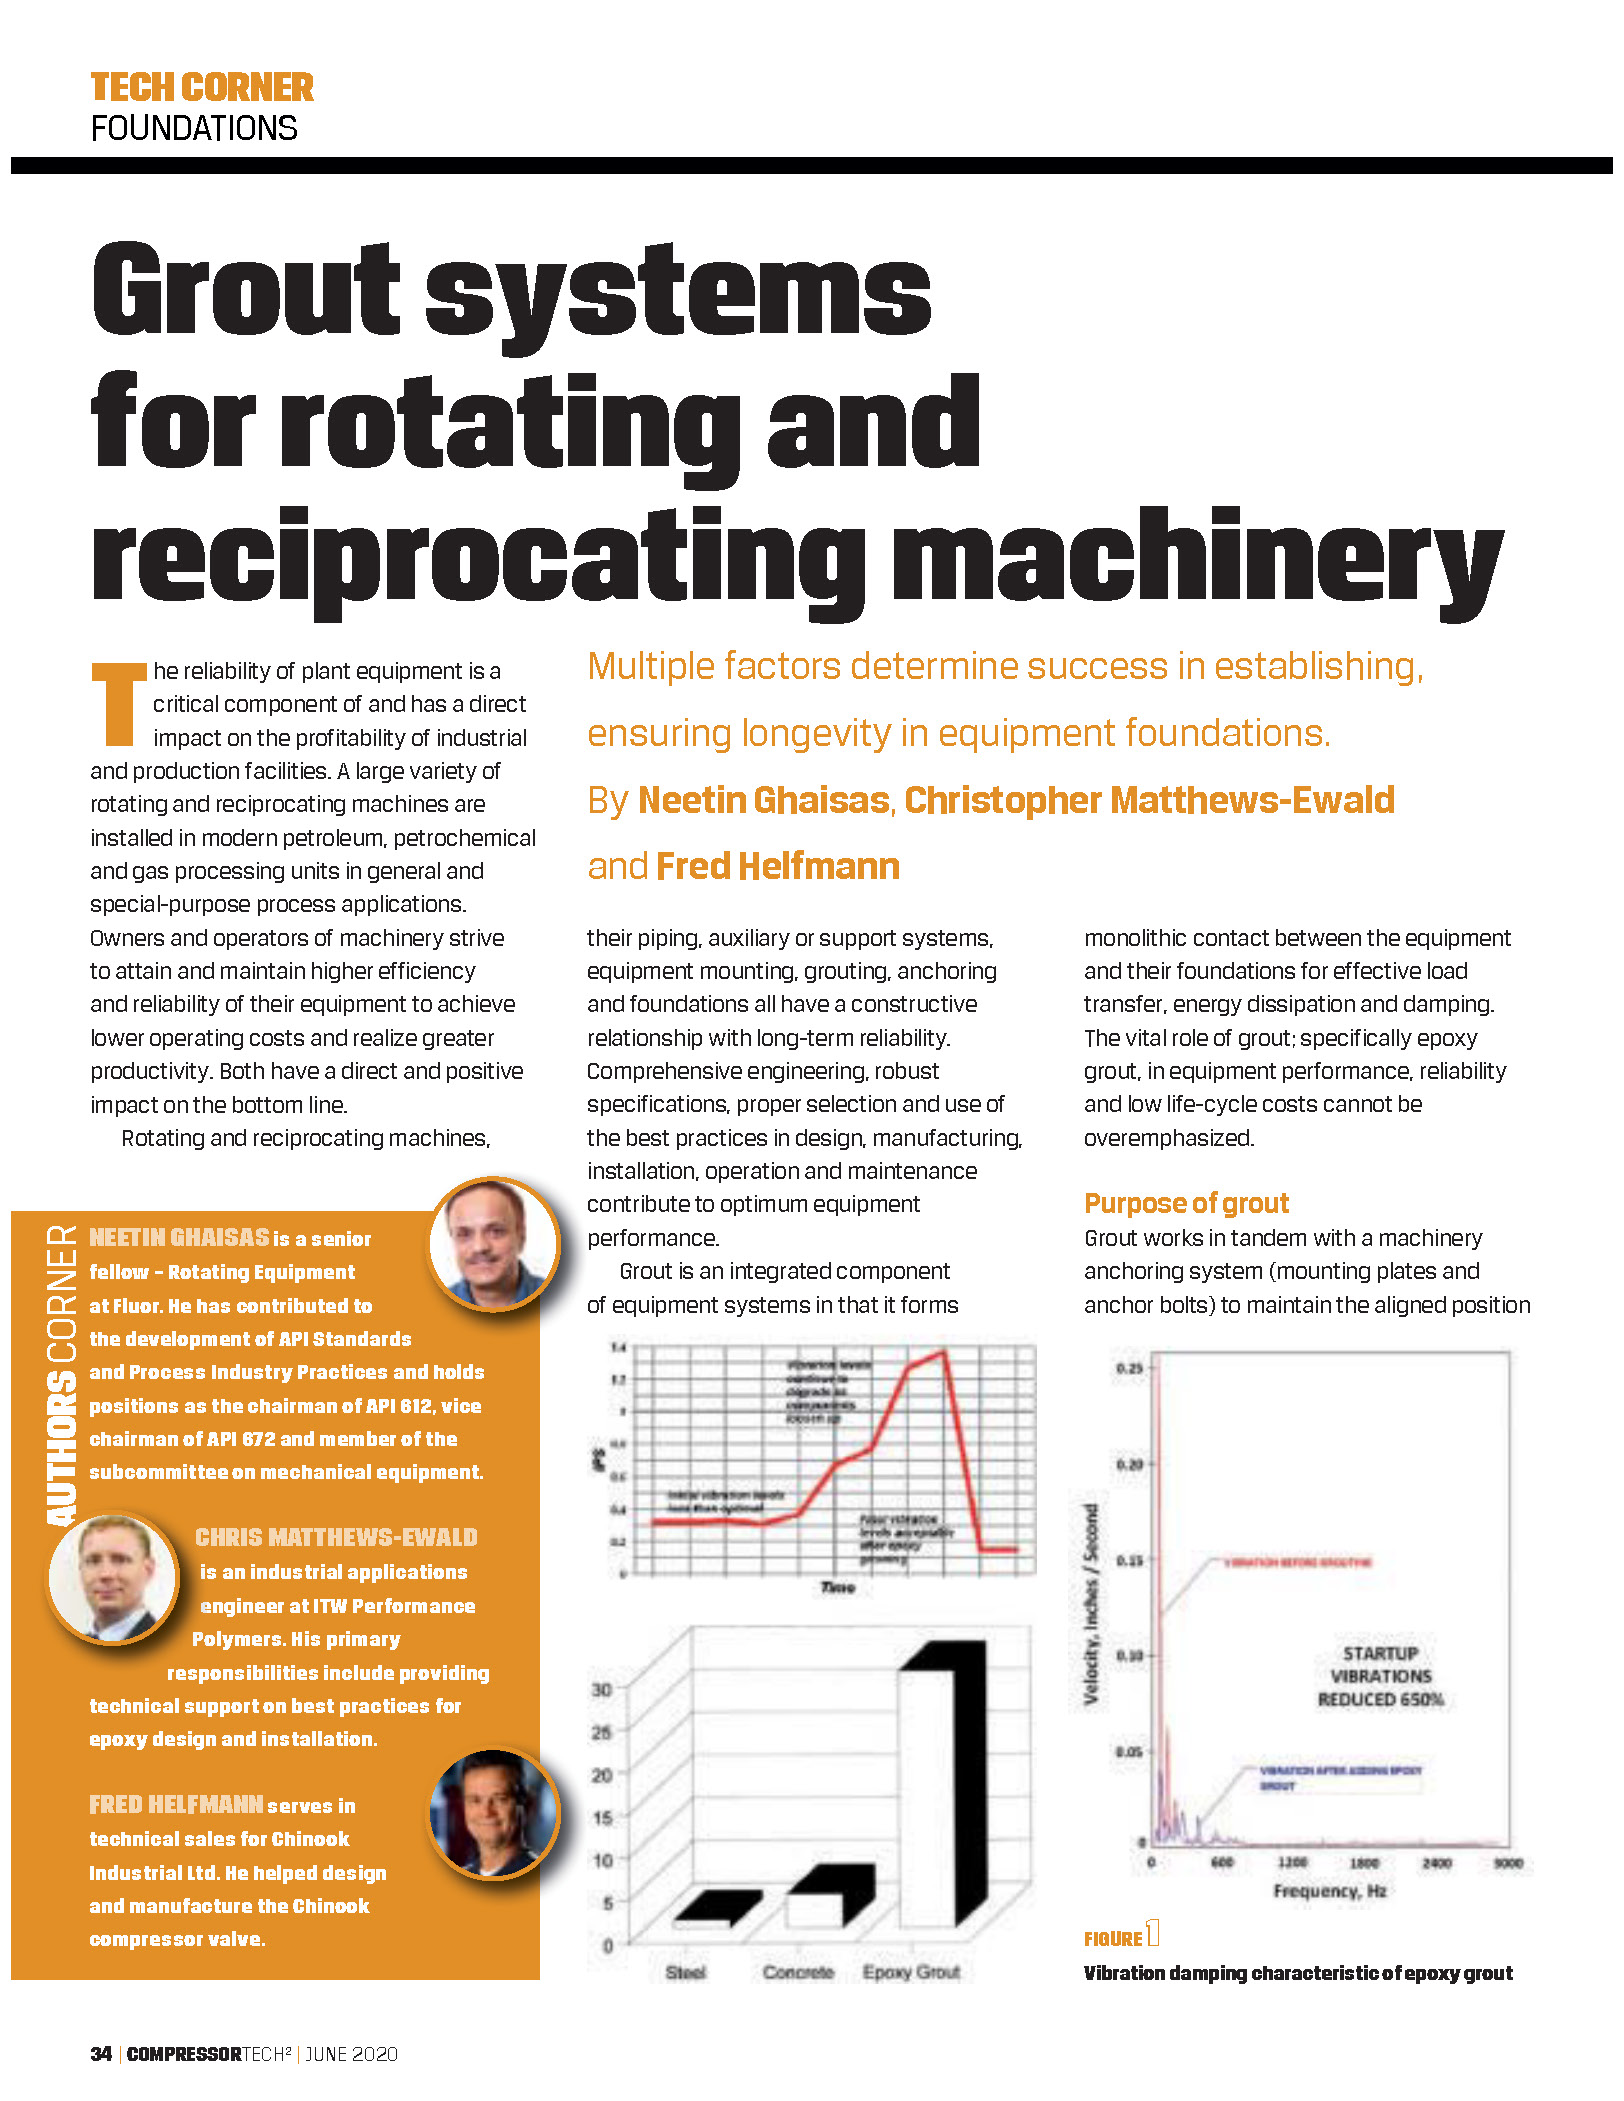 GROUT SYSTEMS PAPER IN CT2 MAGAZINE_JUNE 2020 1.jpg